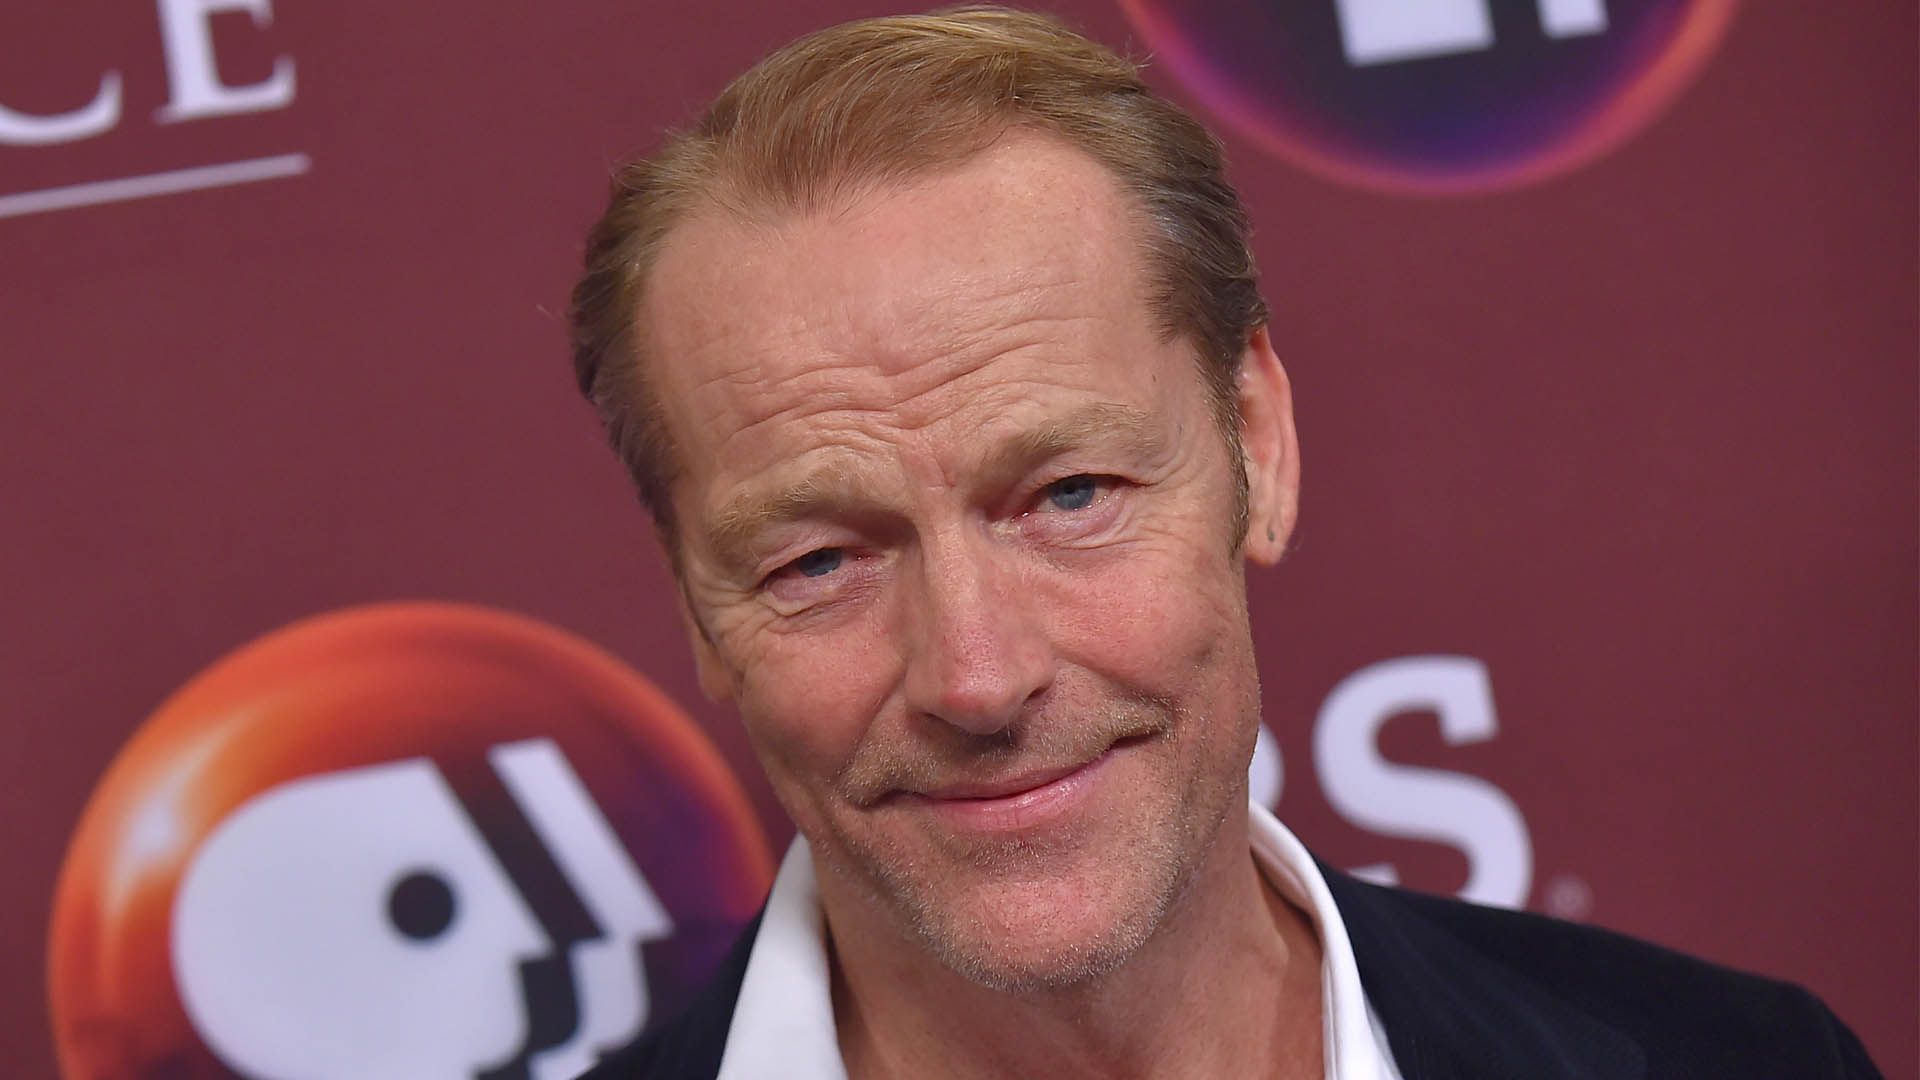 Titans Season 2 casts Jorah Mormont as Bruce Wayne